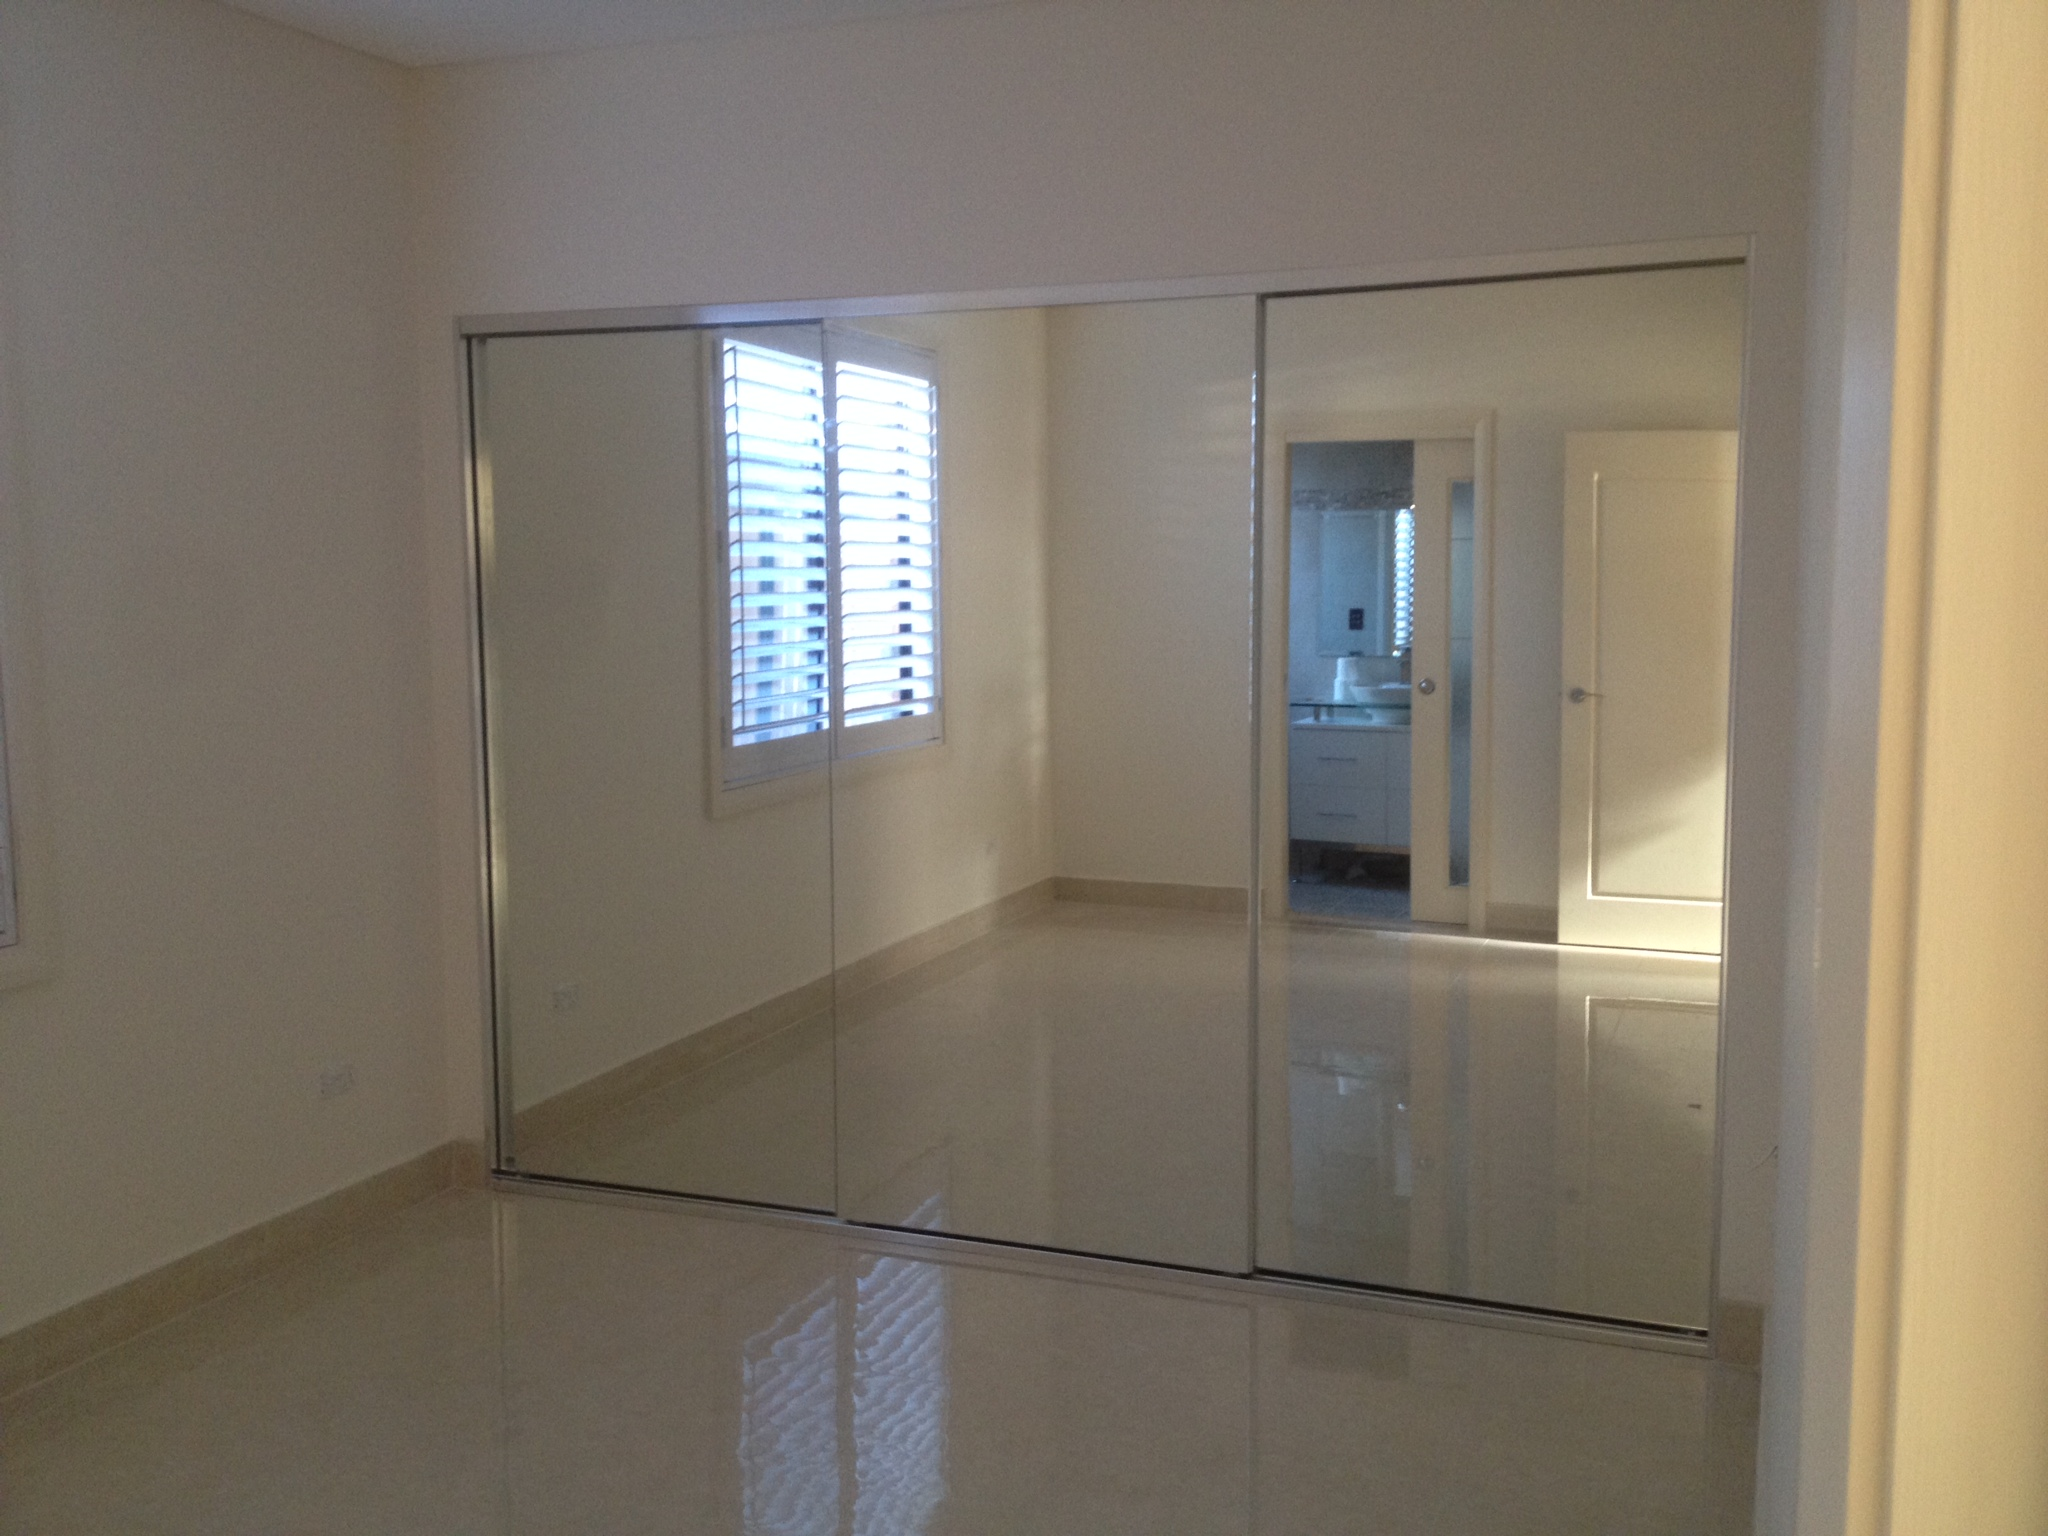 wall to wall wardrobe with mirror doors and white frame.JPG